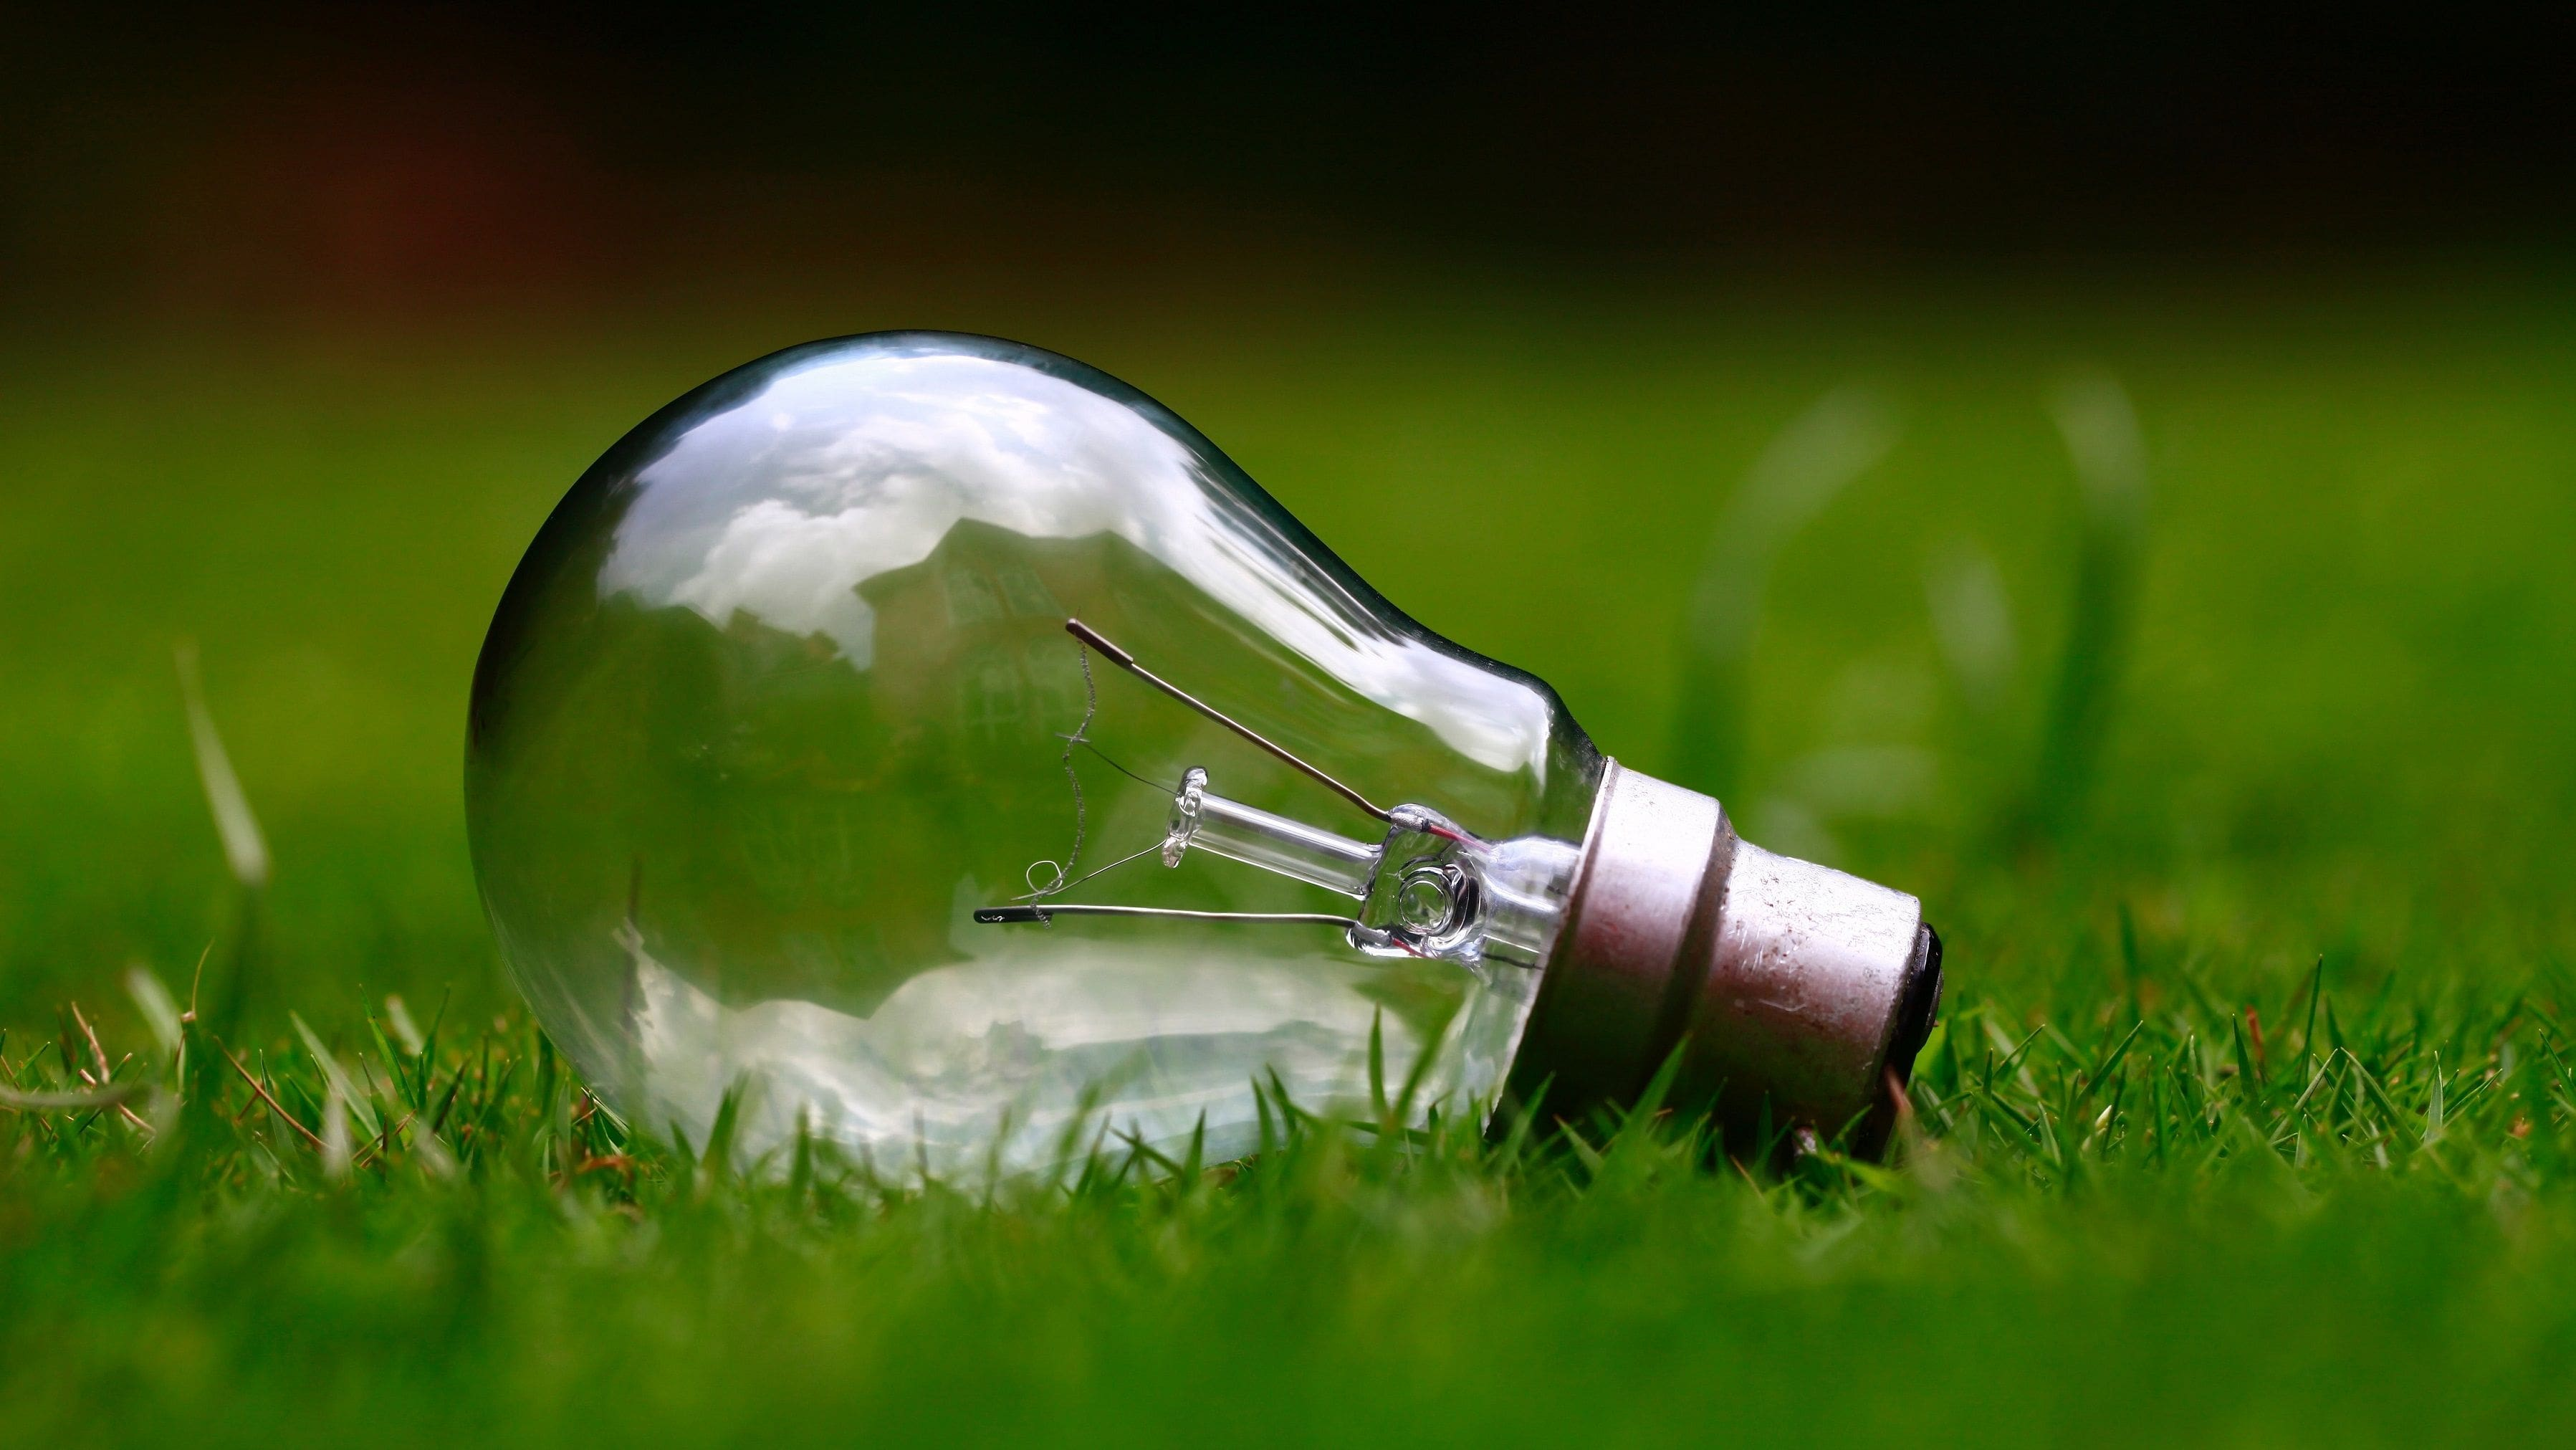 light bulb  on grass to portray tips and tricks